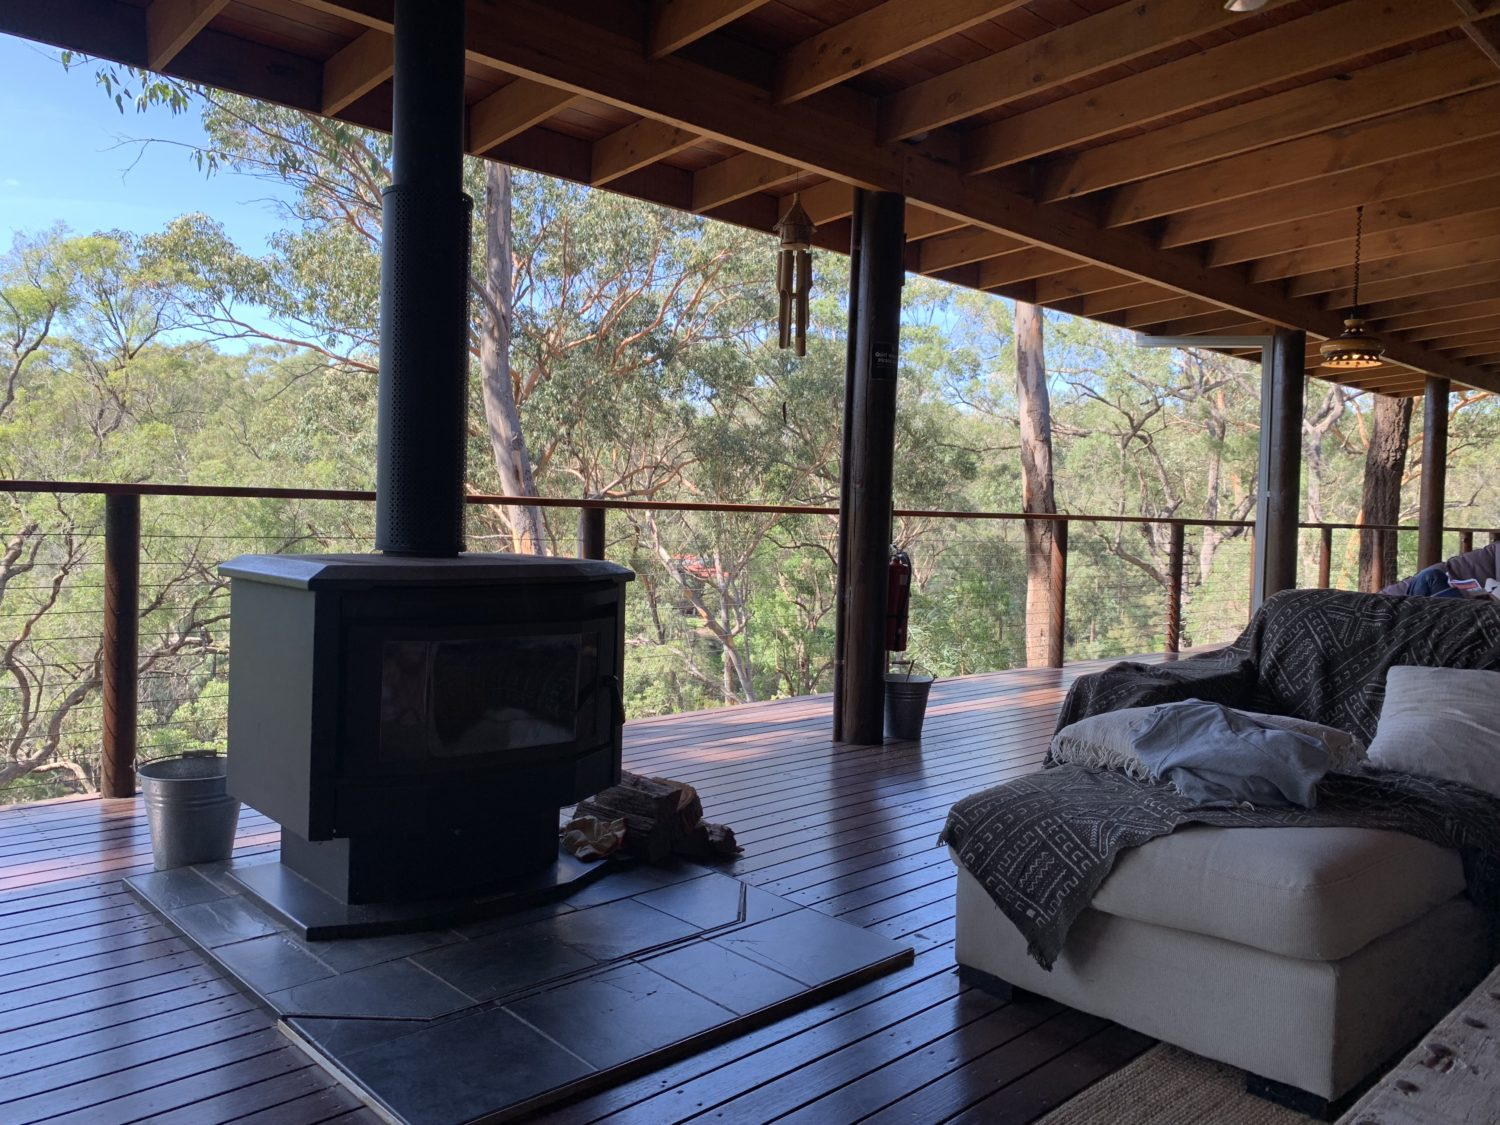 Billabong Retreat: My ups and downs during a recent meditation stay